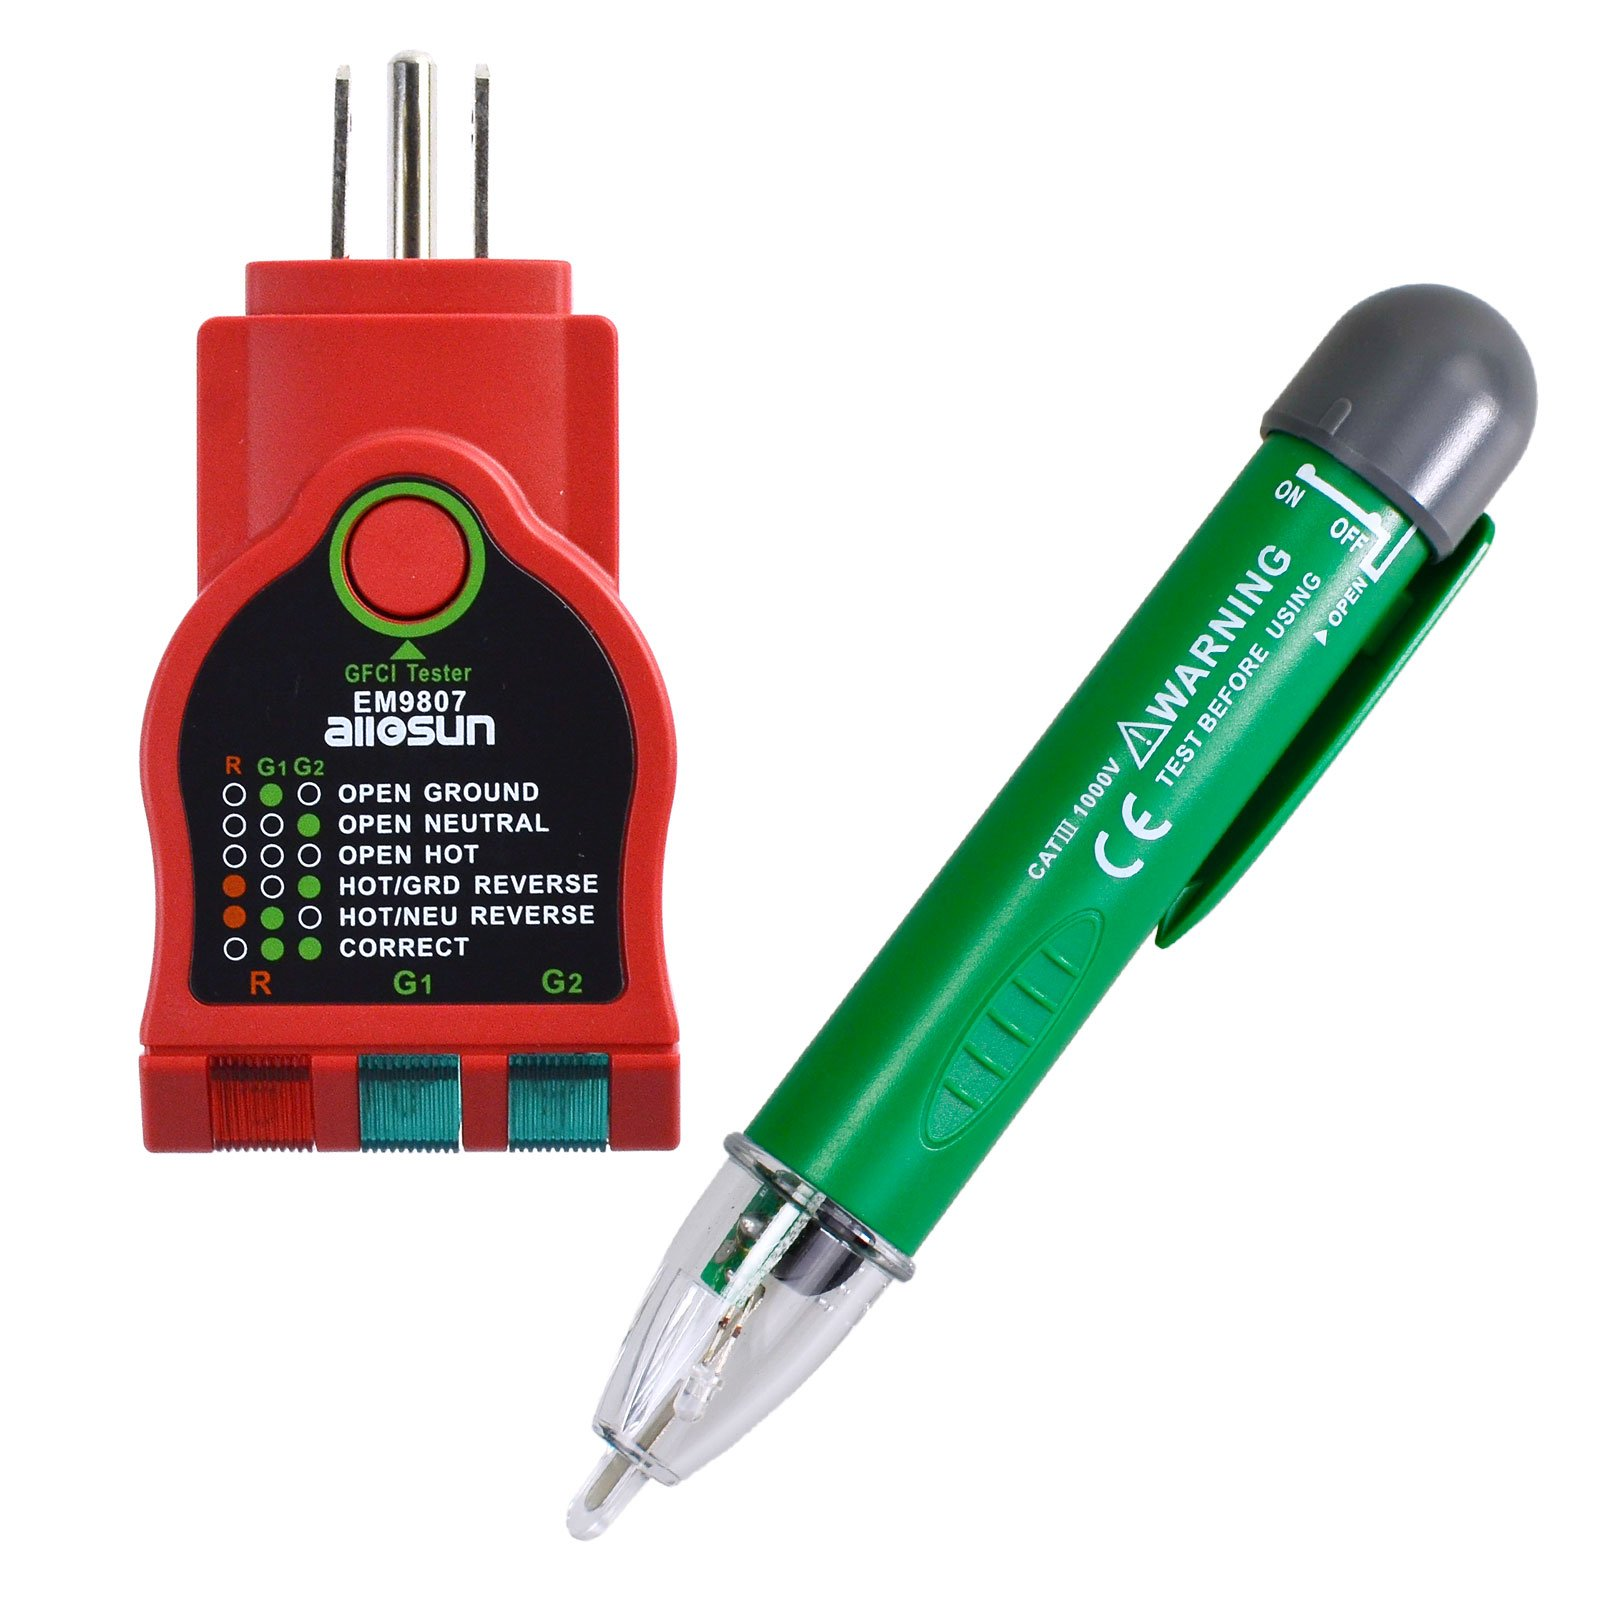 all-sun GK7 Non-Contact Voltage Tester & GFCI Outlet Tester, Safety Kit 2-Piece